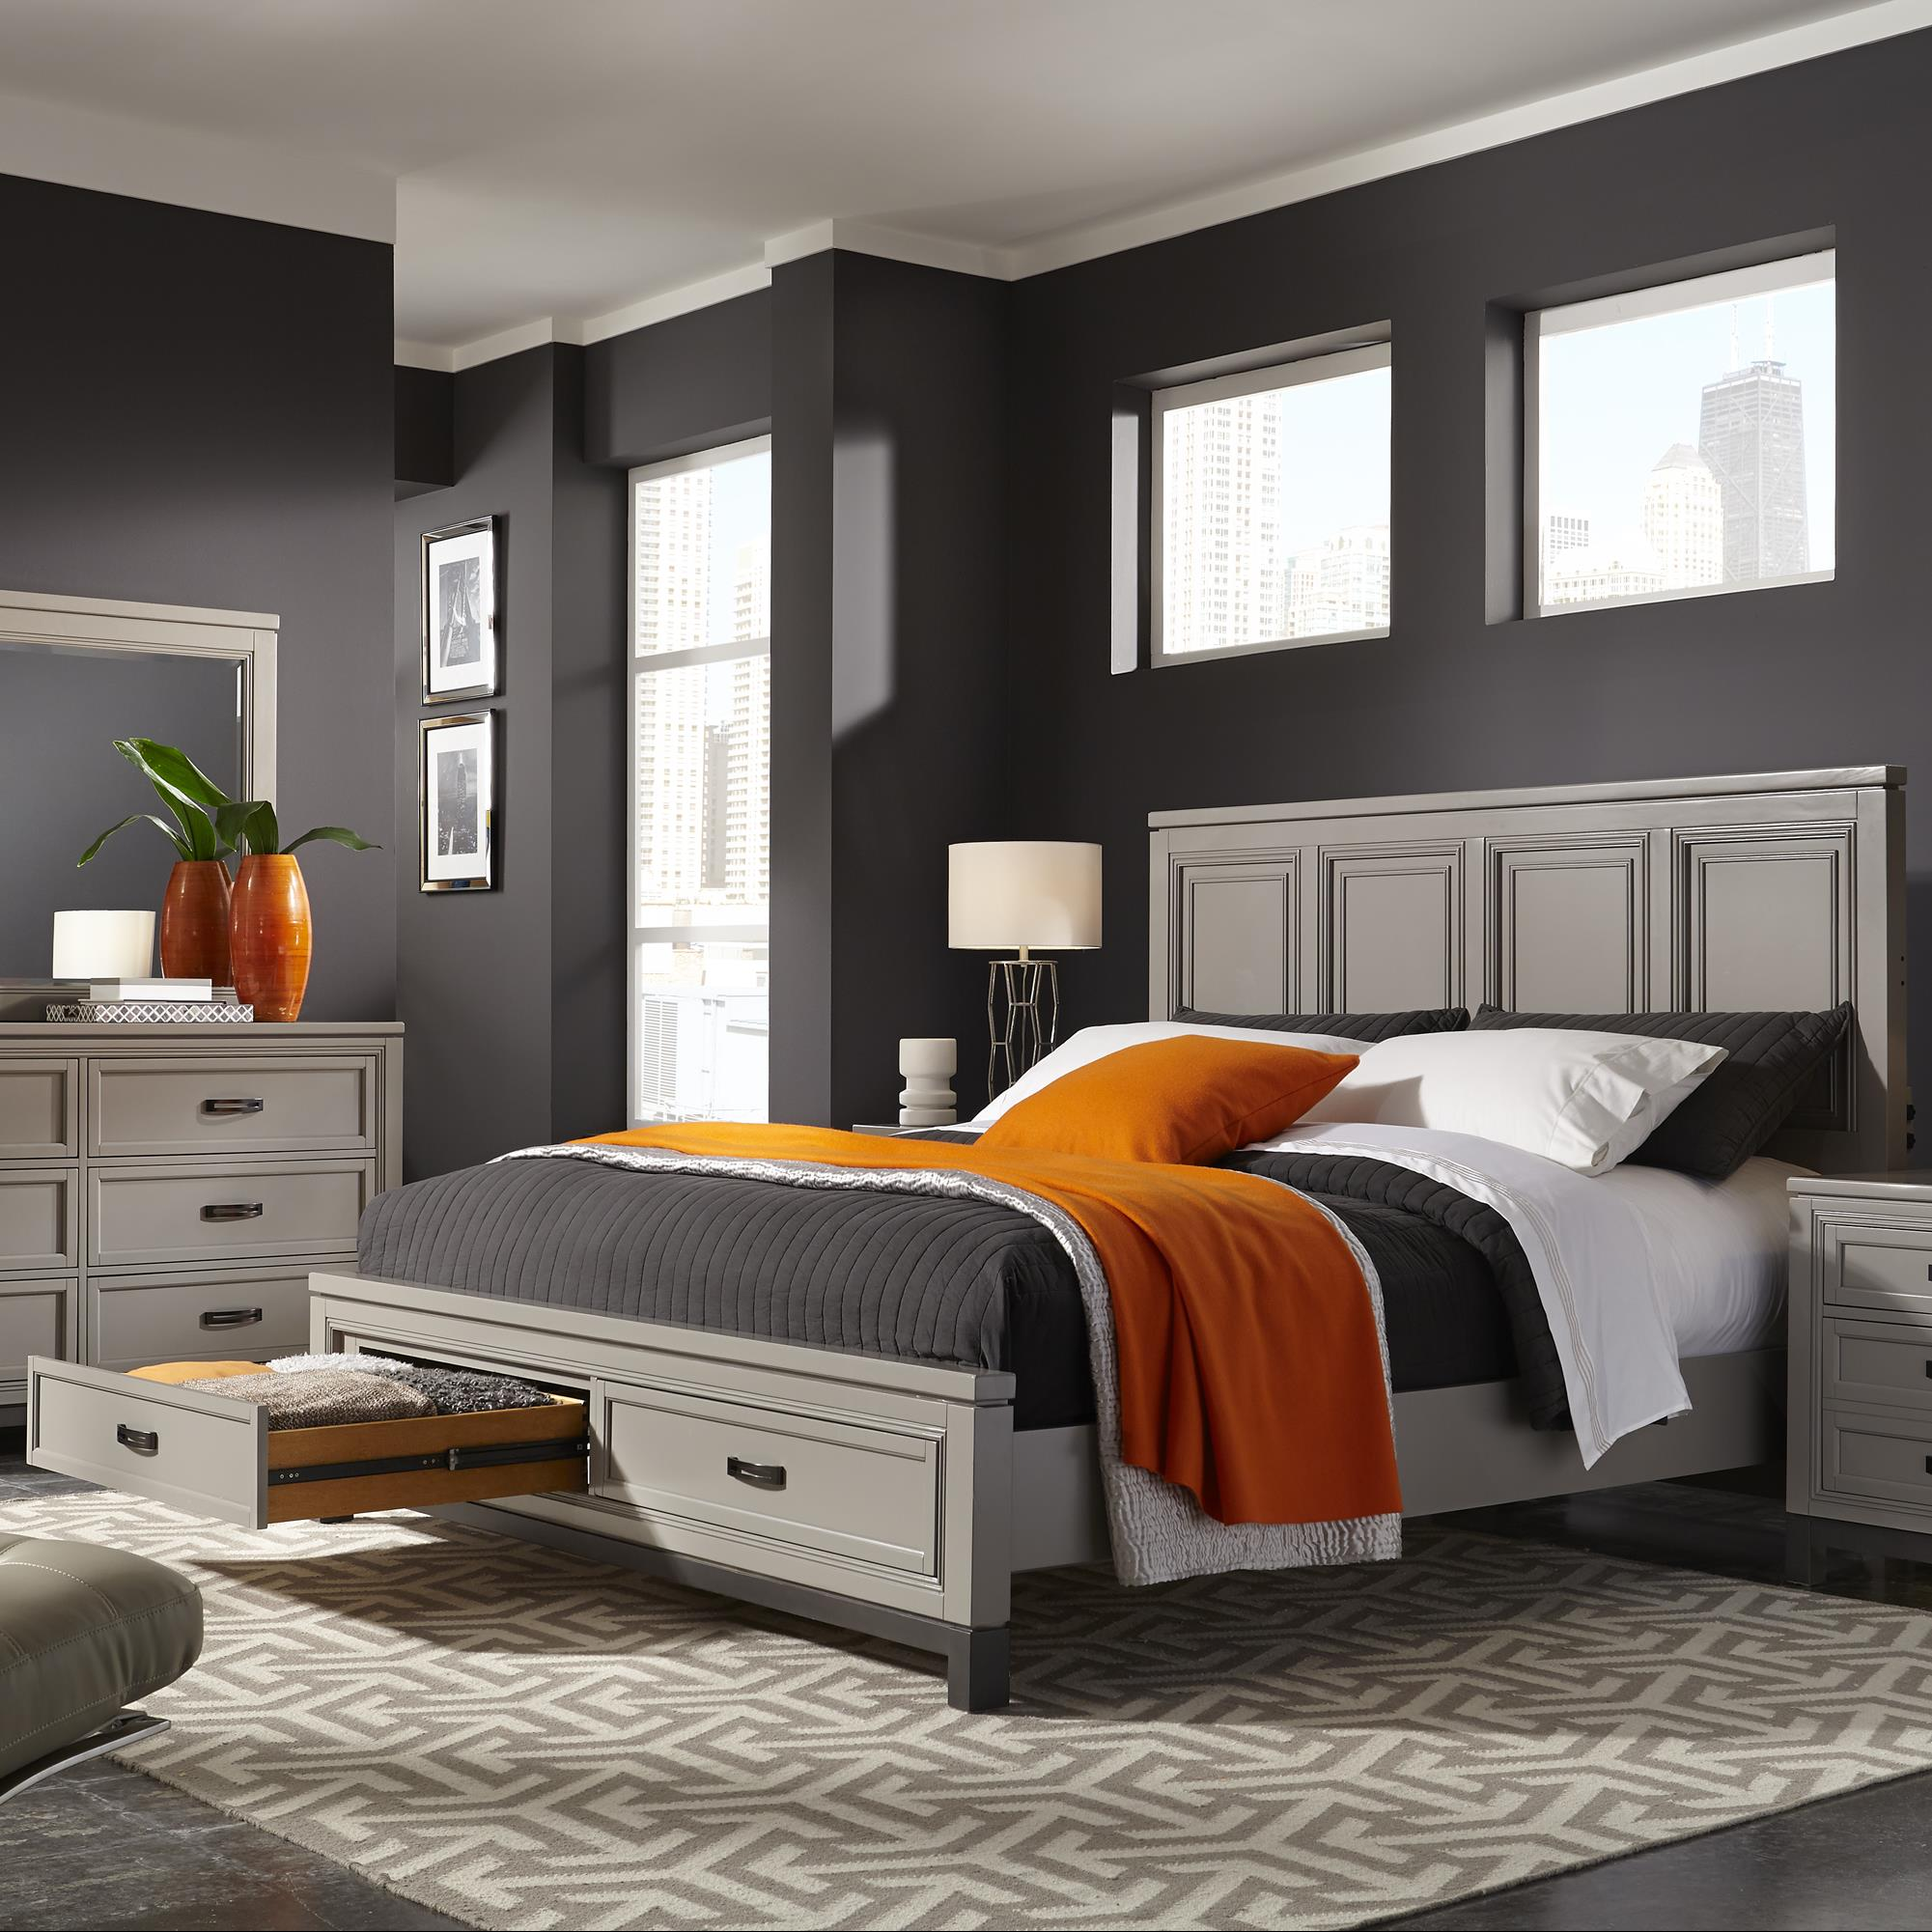 Aspenhome Hyde Park Cal King Painted Panel Storage Bed - Item Number: I32-495-407D-410